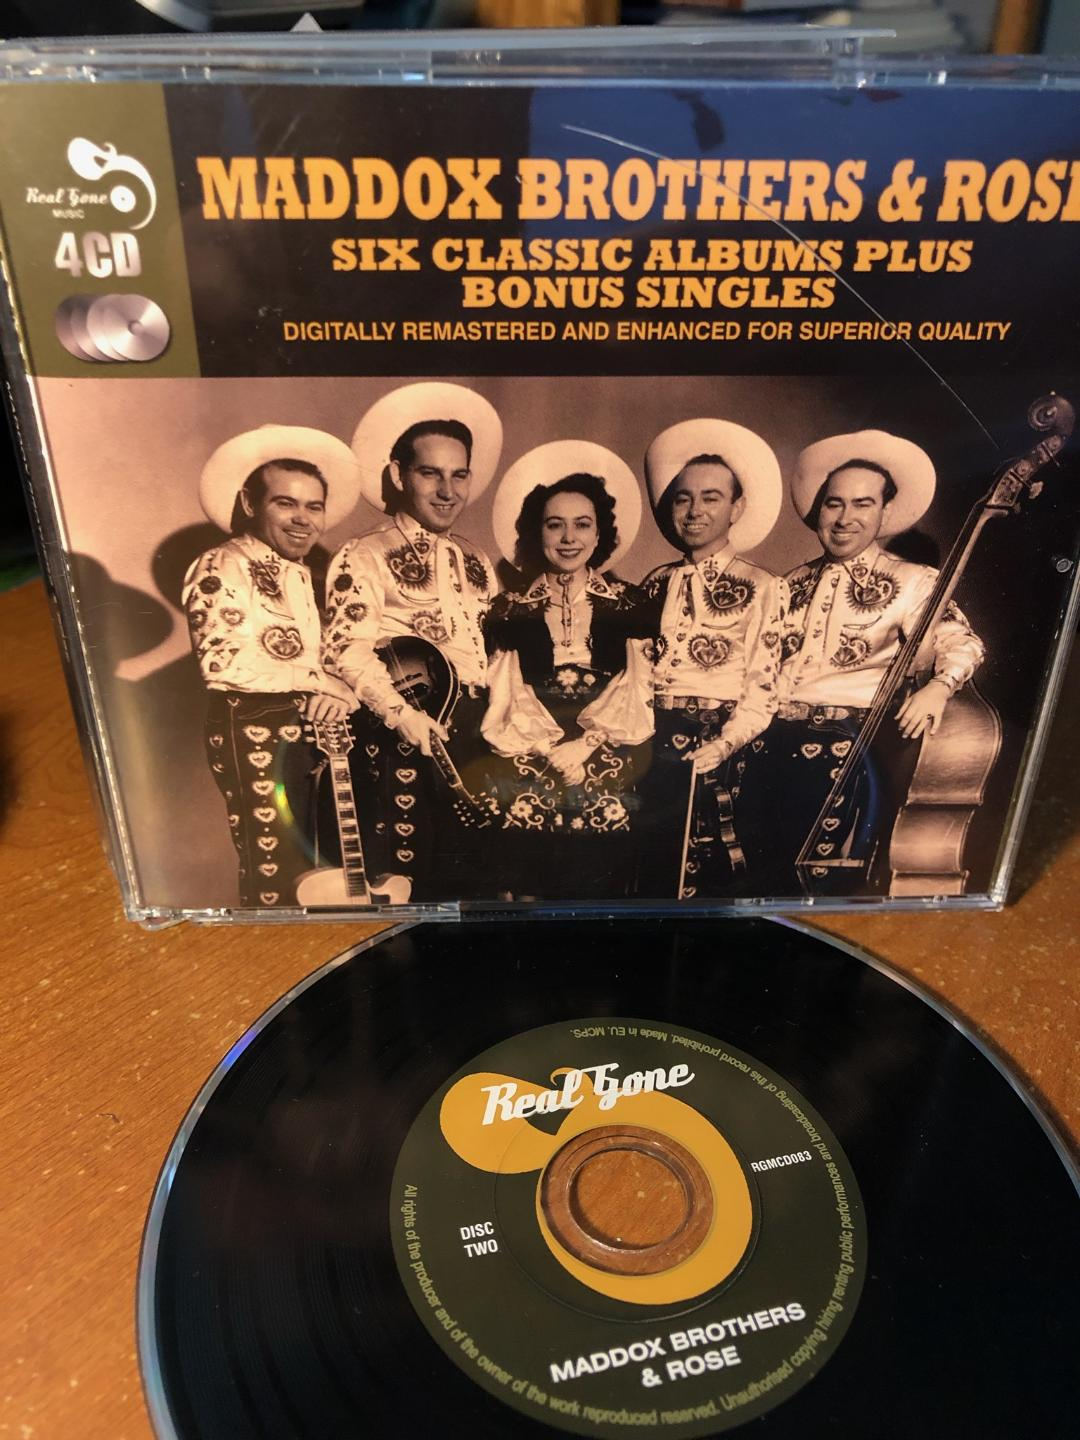 The country singing group Maddox Brothers and Rose settled down in the Modesto area for most of their music career.